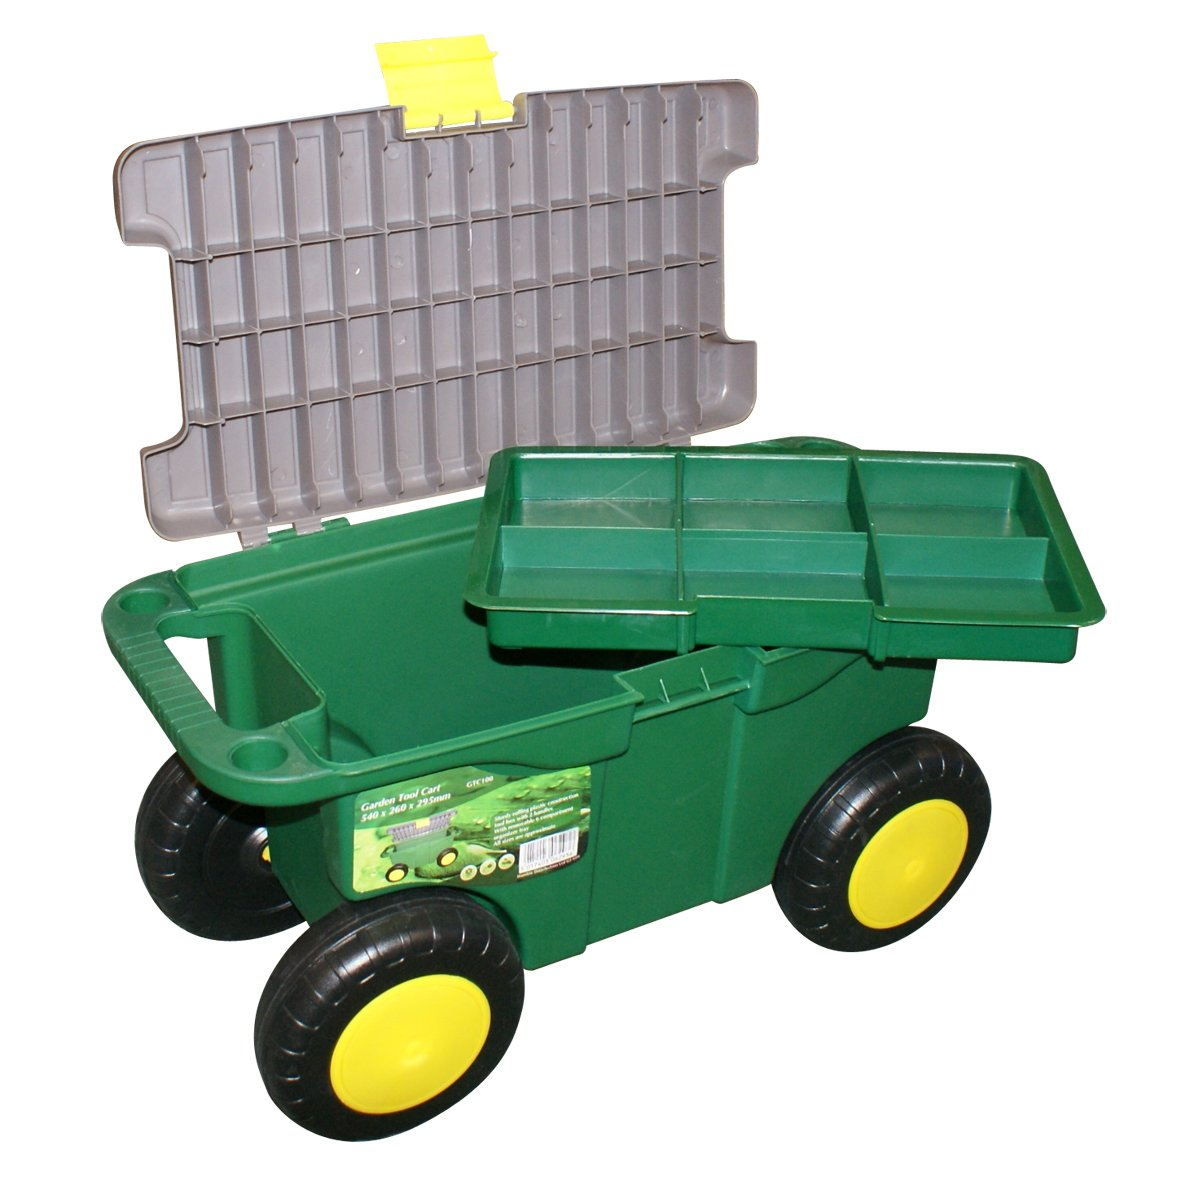 Portable Garden Tool Box With Wheels 50 Cm: Amazon.co.uk: Garden U0026 Outdoors